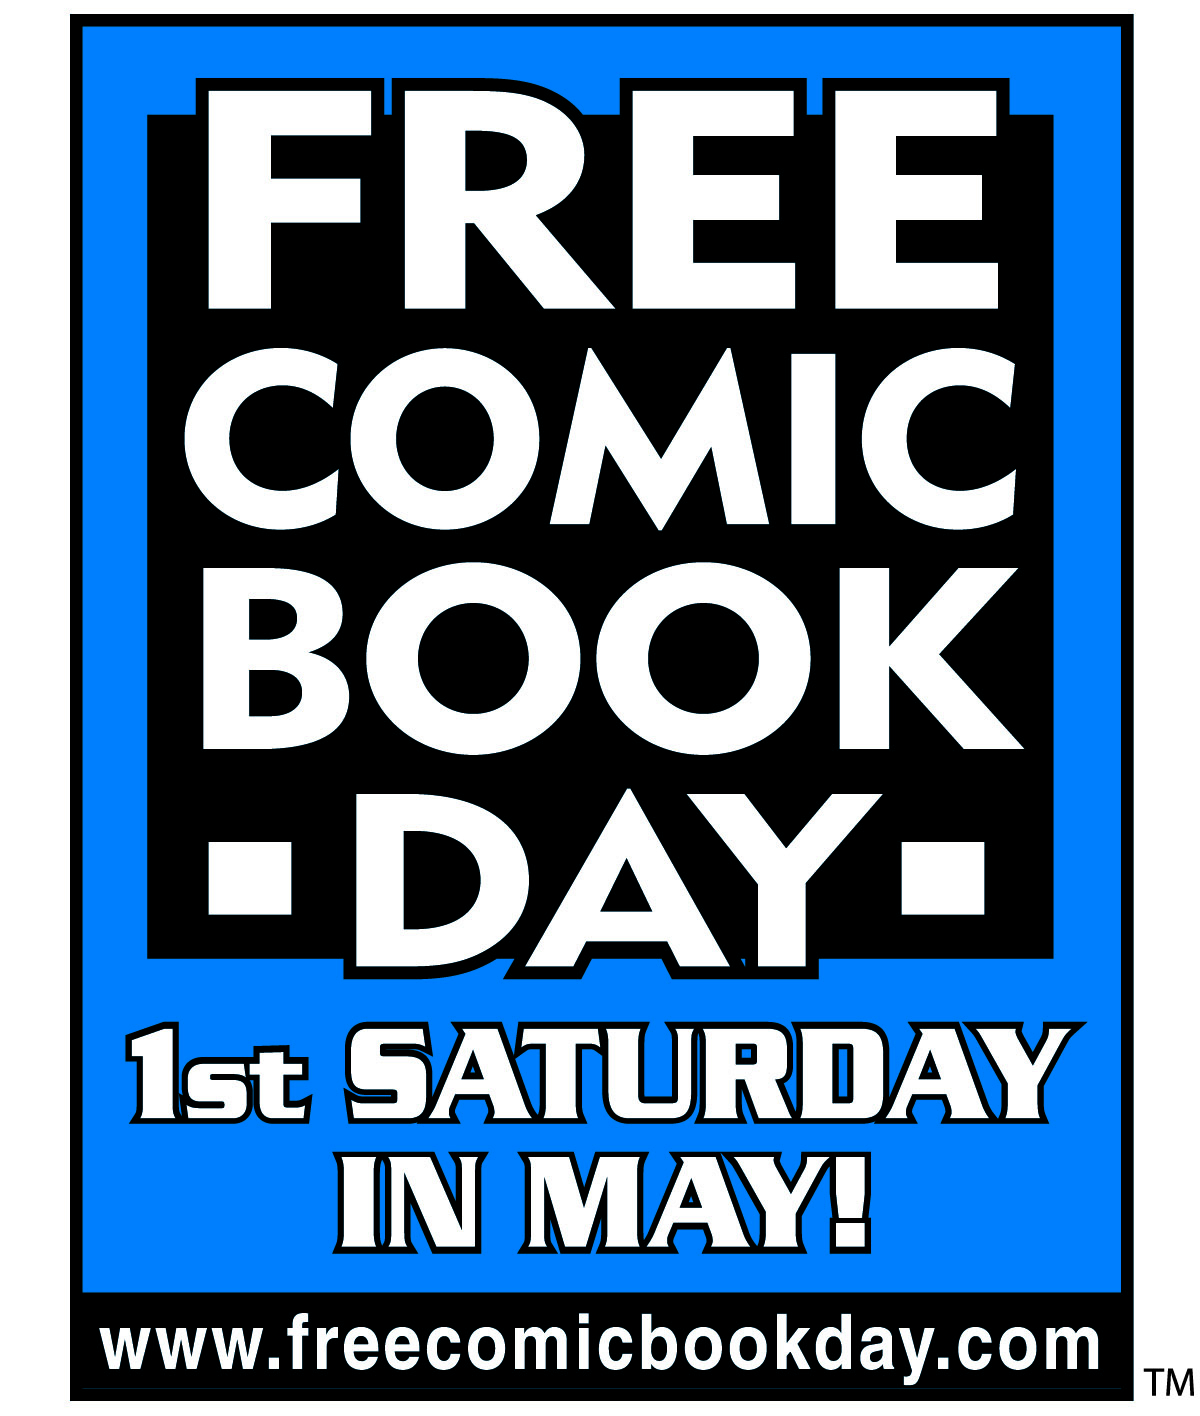 Free Comic Book Day 2015!